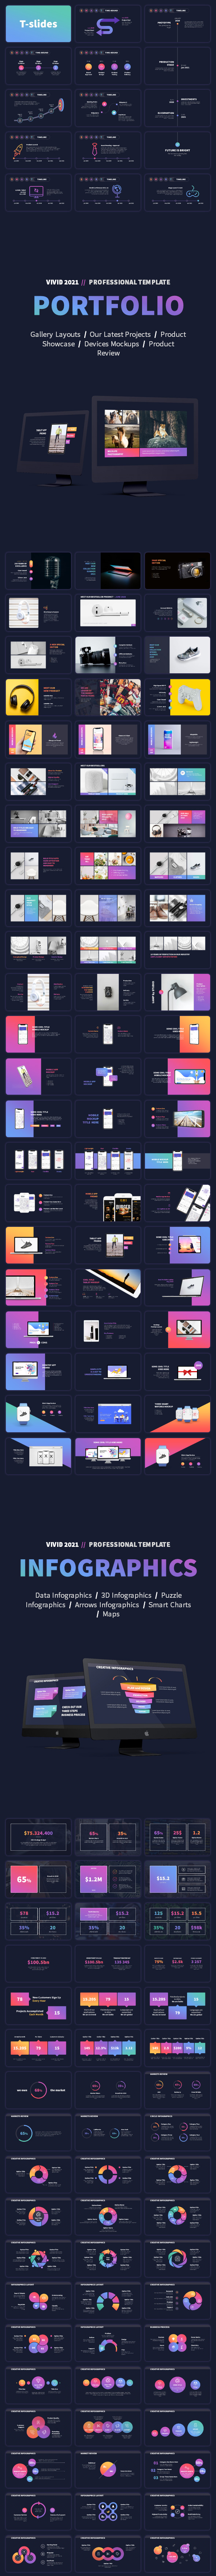 VIVID 2021 - Professional PowerPoint Presentation Template - 17